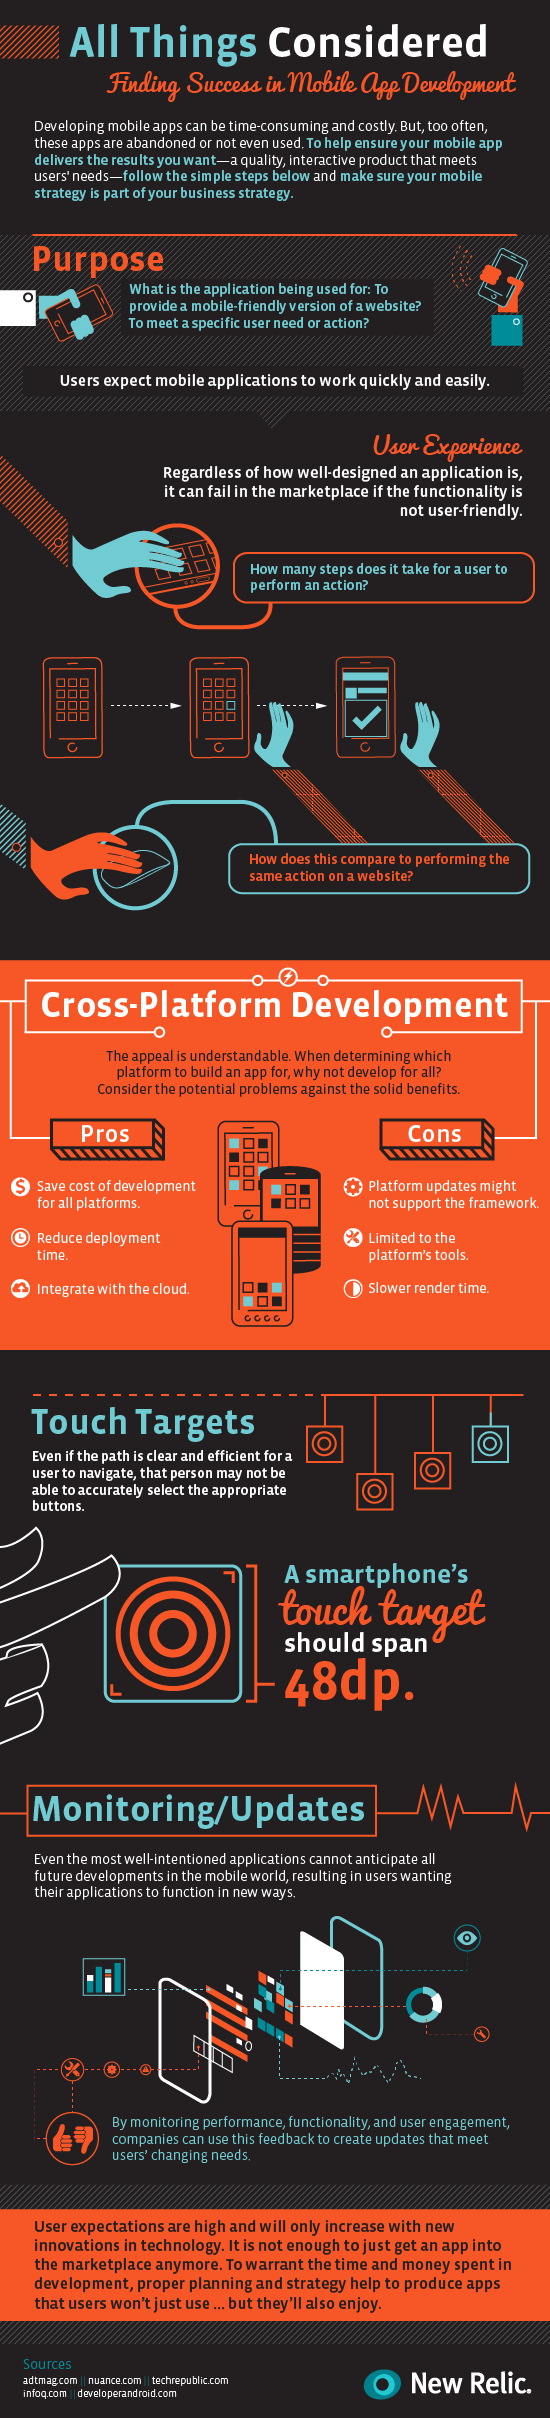 Infographic: Finding Success in Mobile App Development